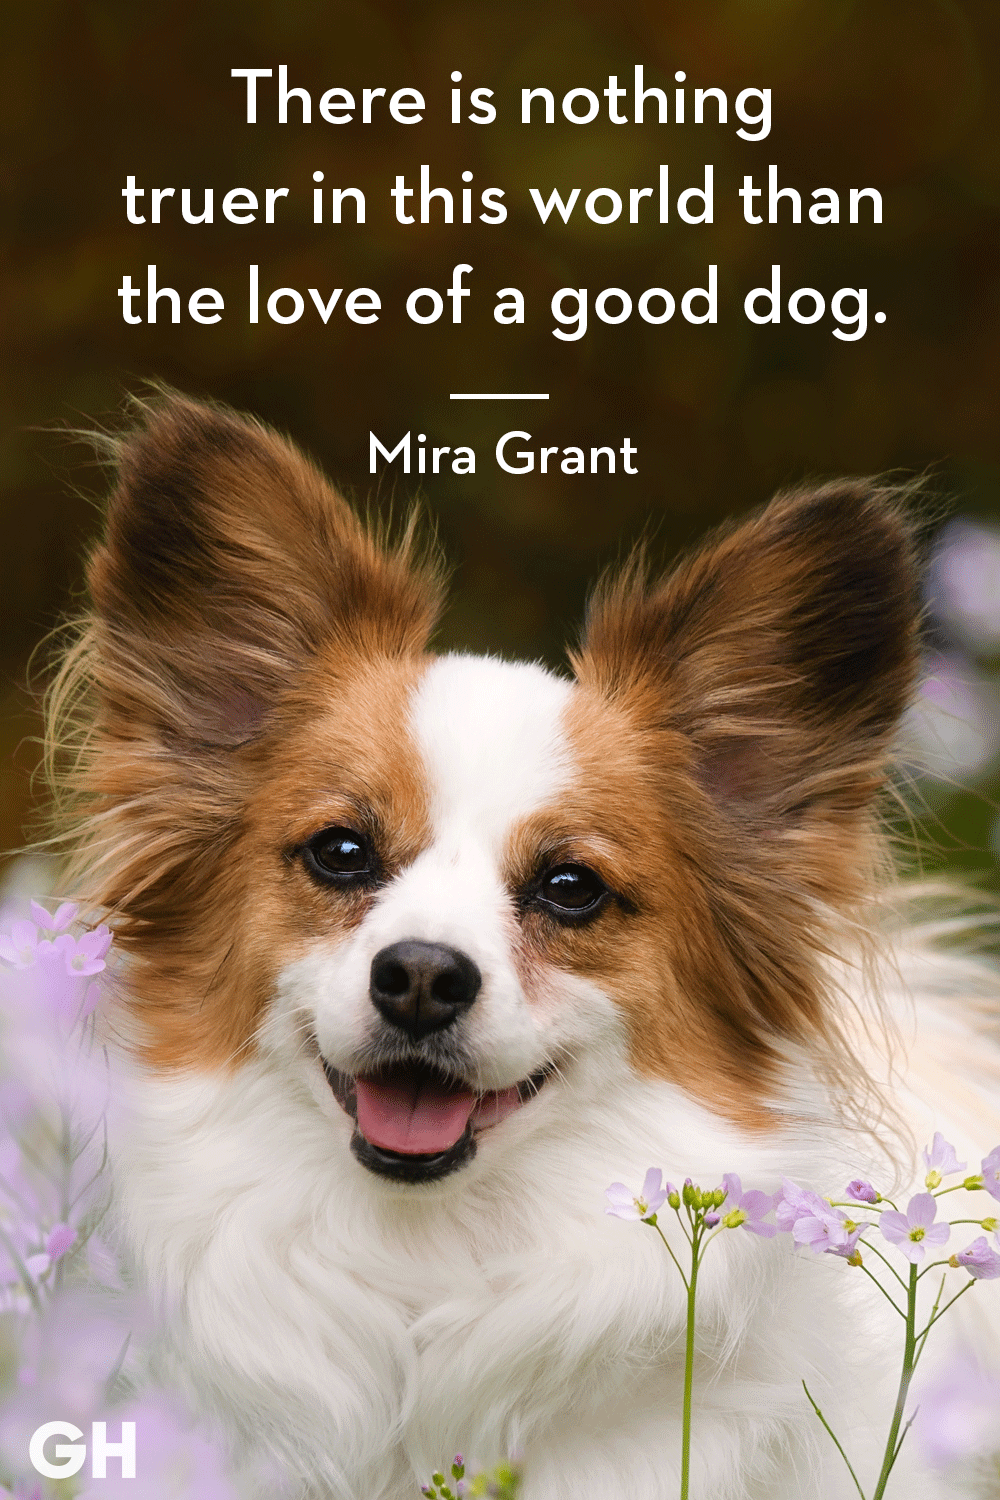 Dog Quotes 30 Dog Quotes That Every Animal Lover Will Relate To   Best Dog Quotes Dog Quotes